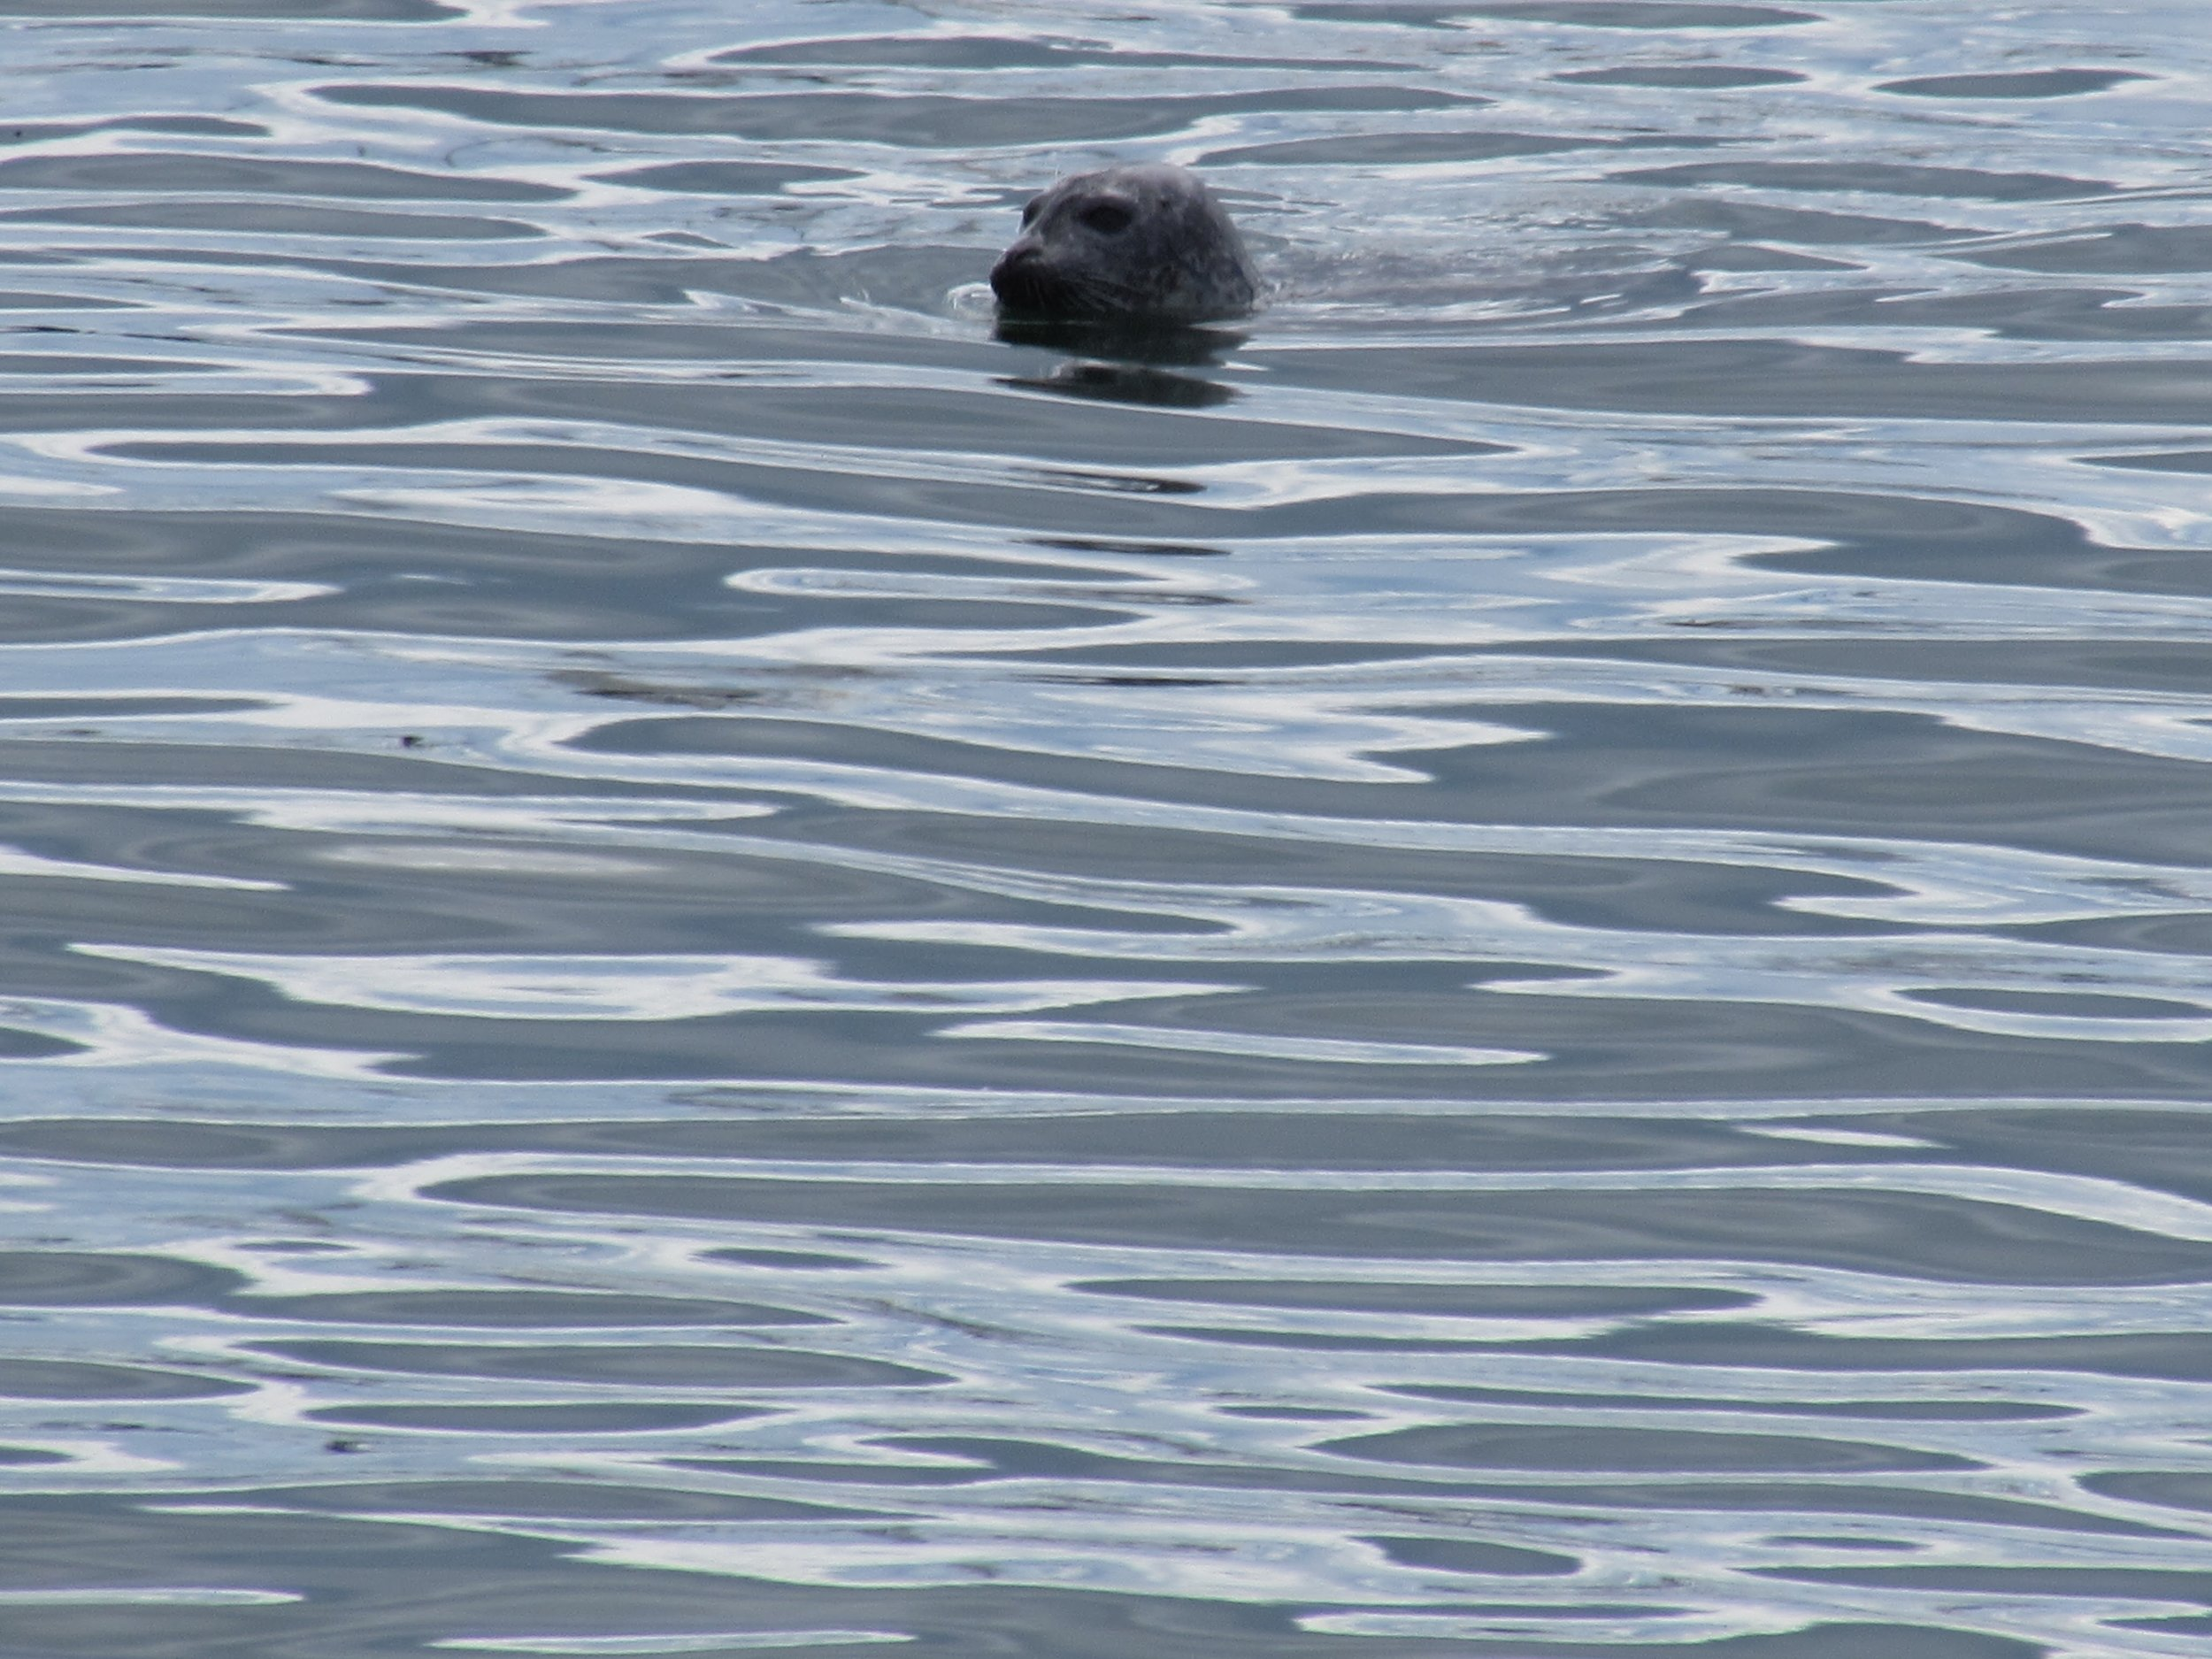 Harbor seal in Casco Bay, seen from the Peaks Island Ferry.